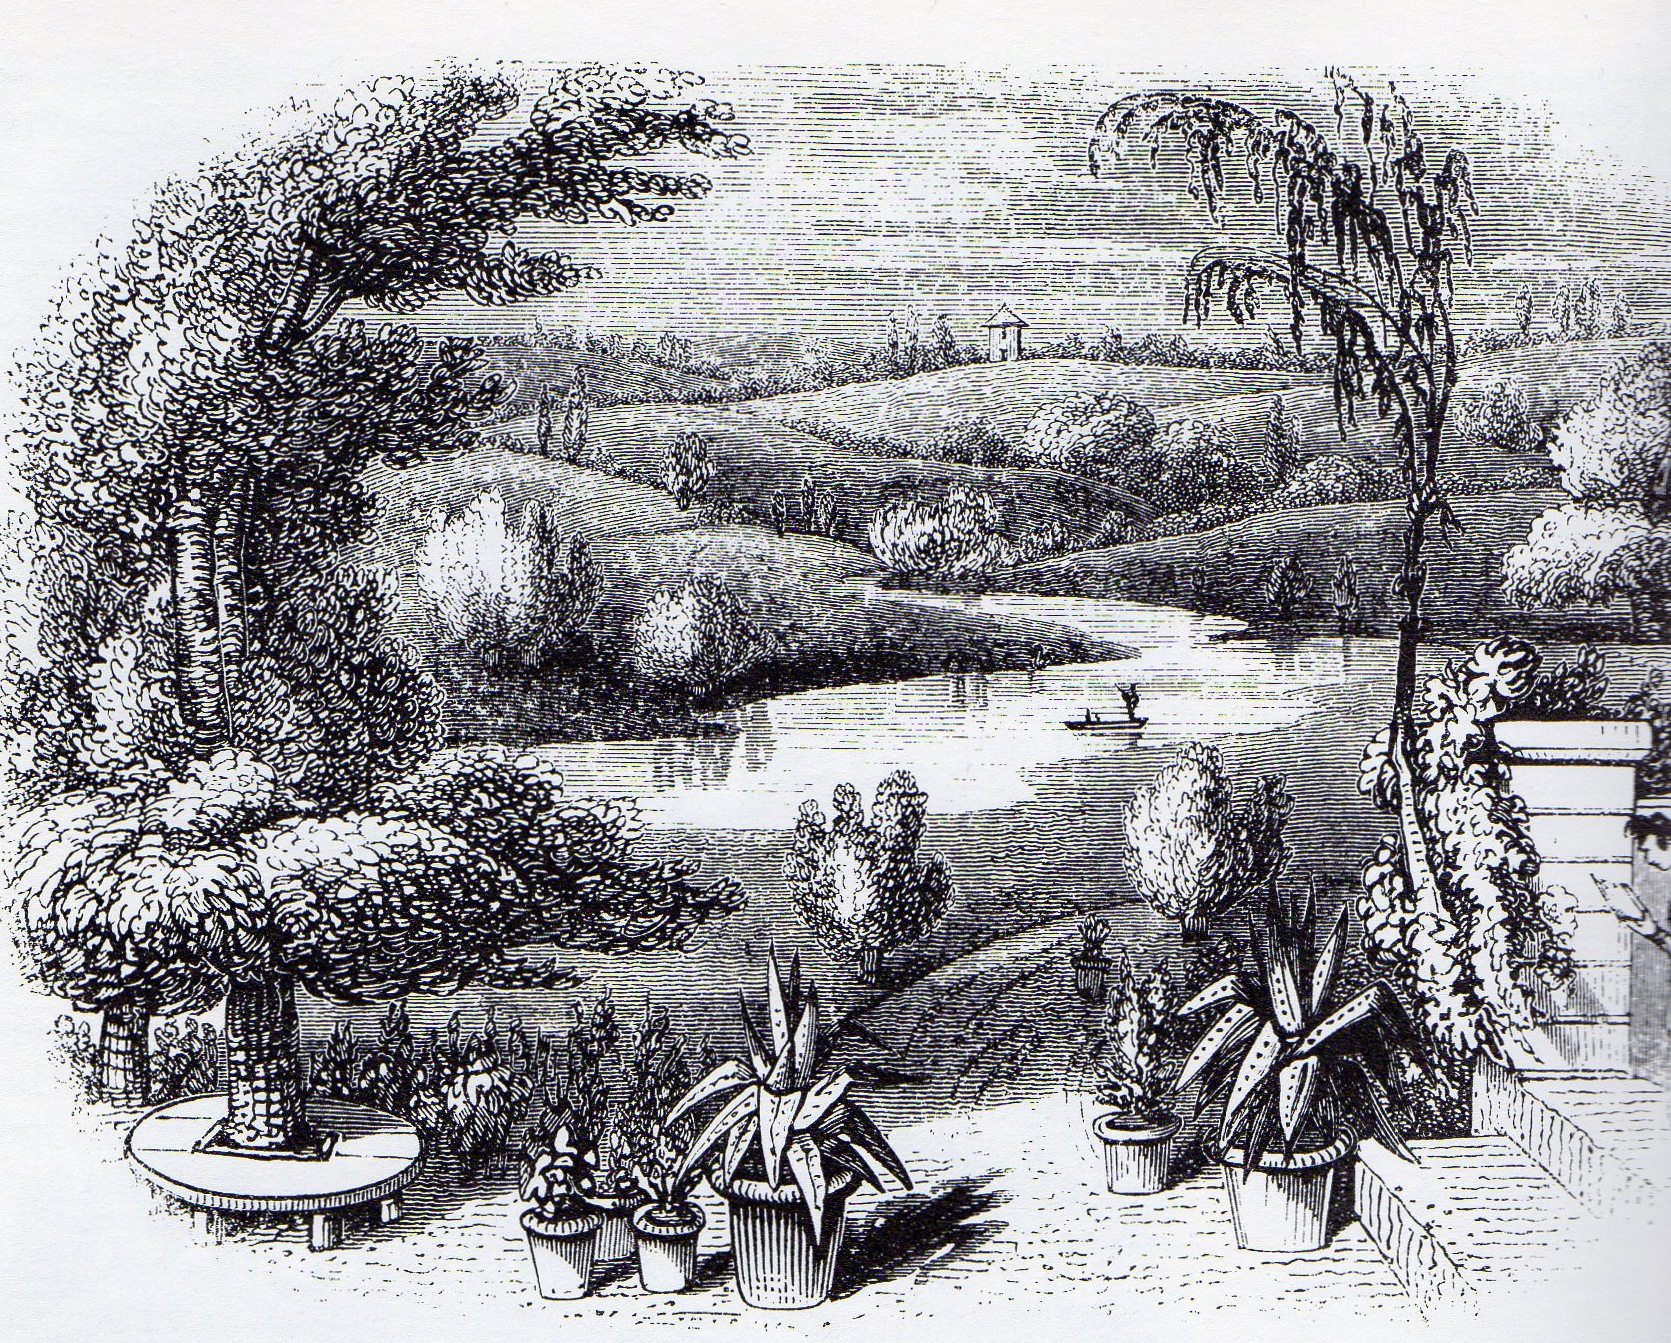 Charles McIntosh preferred the natural landscape garden.